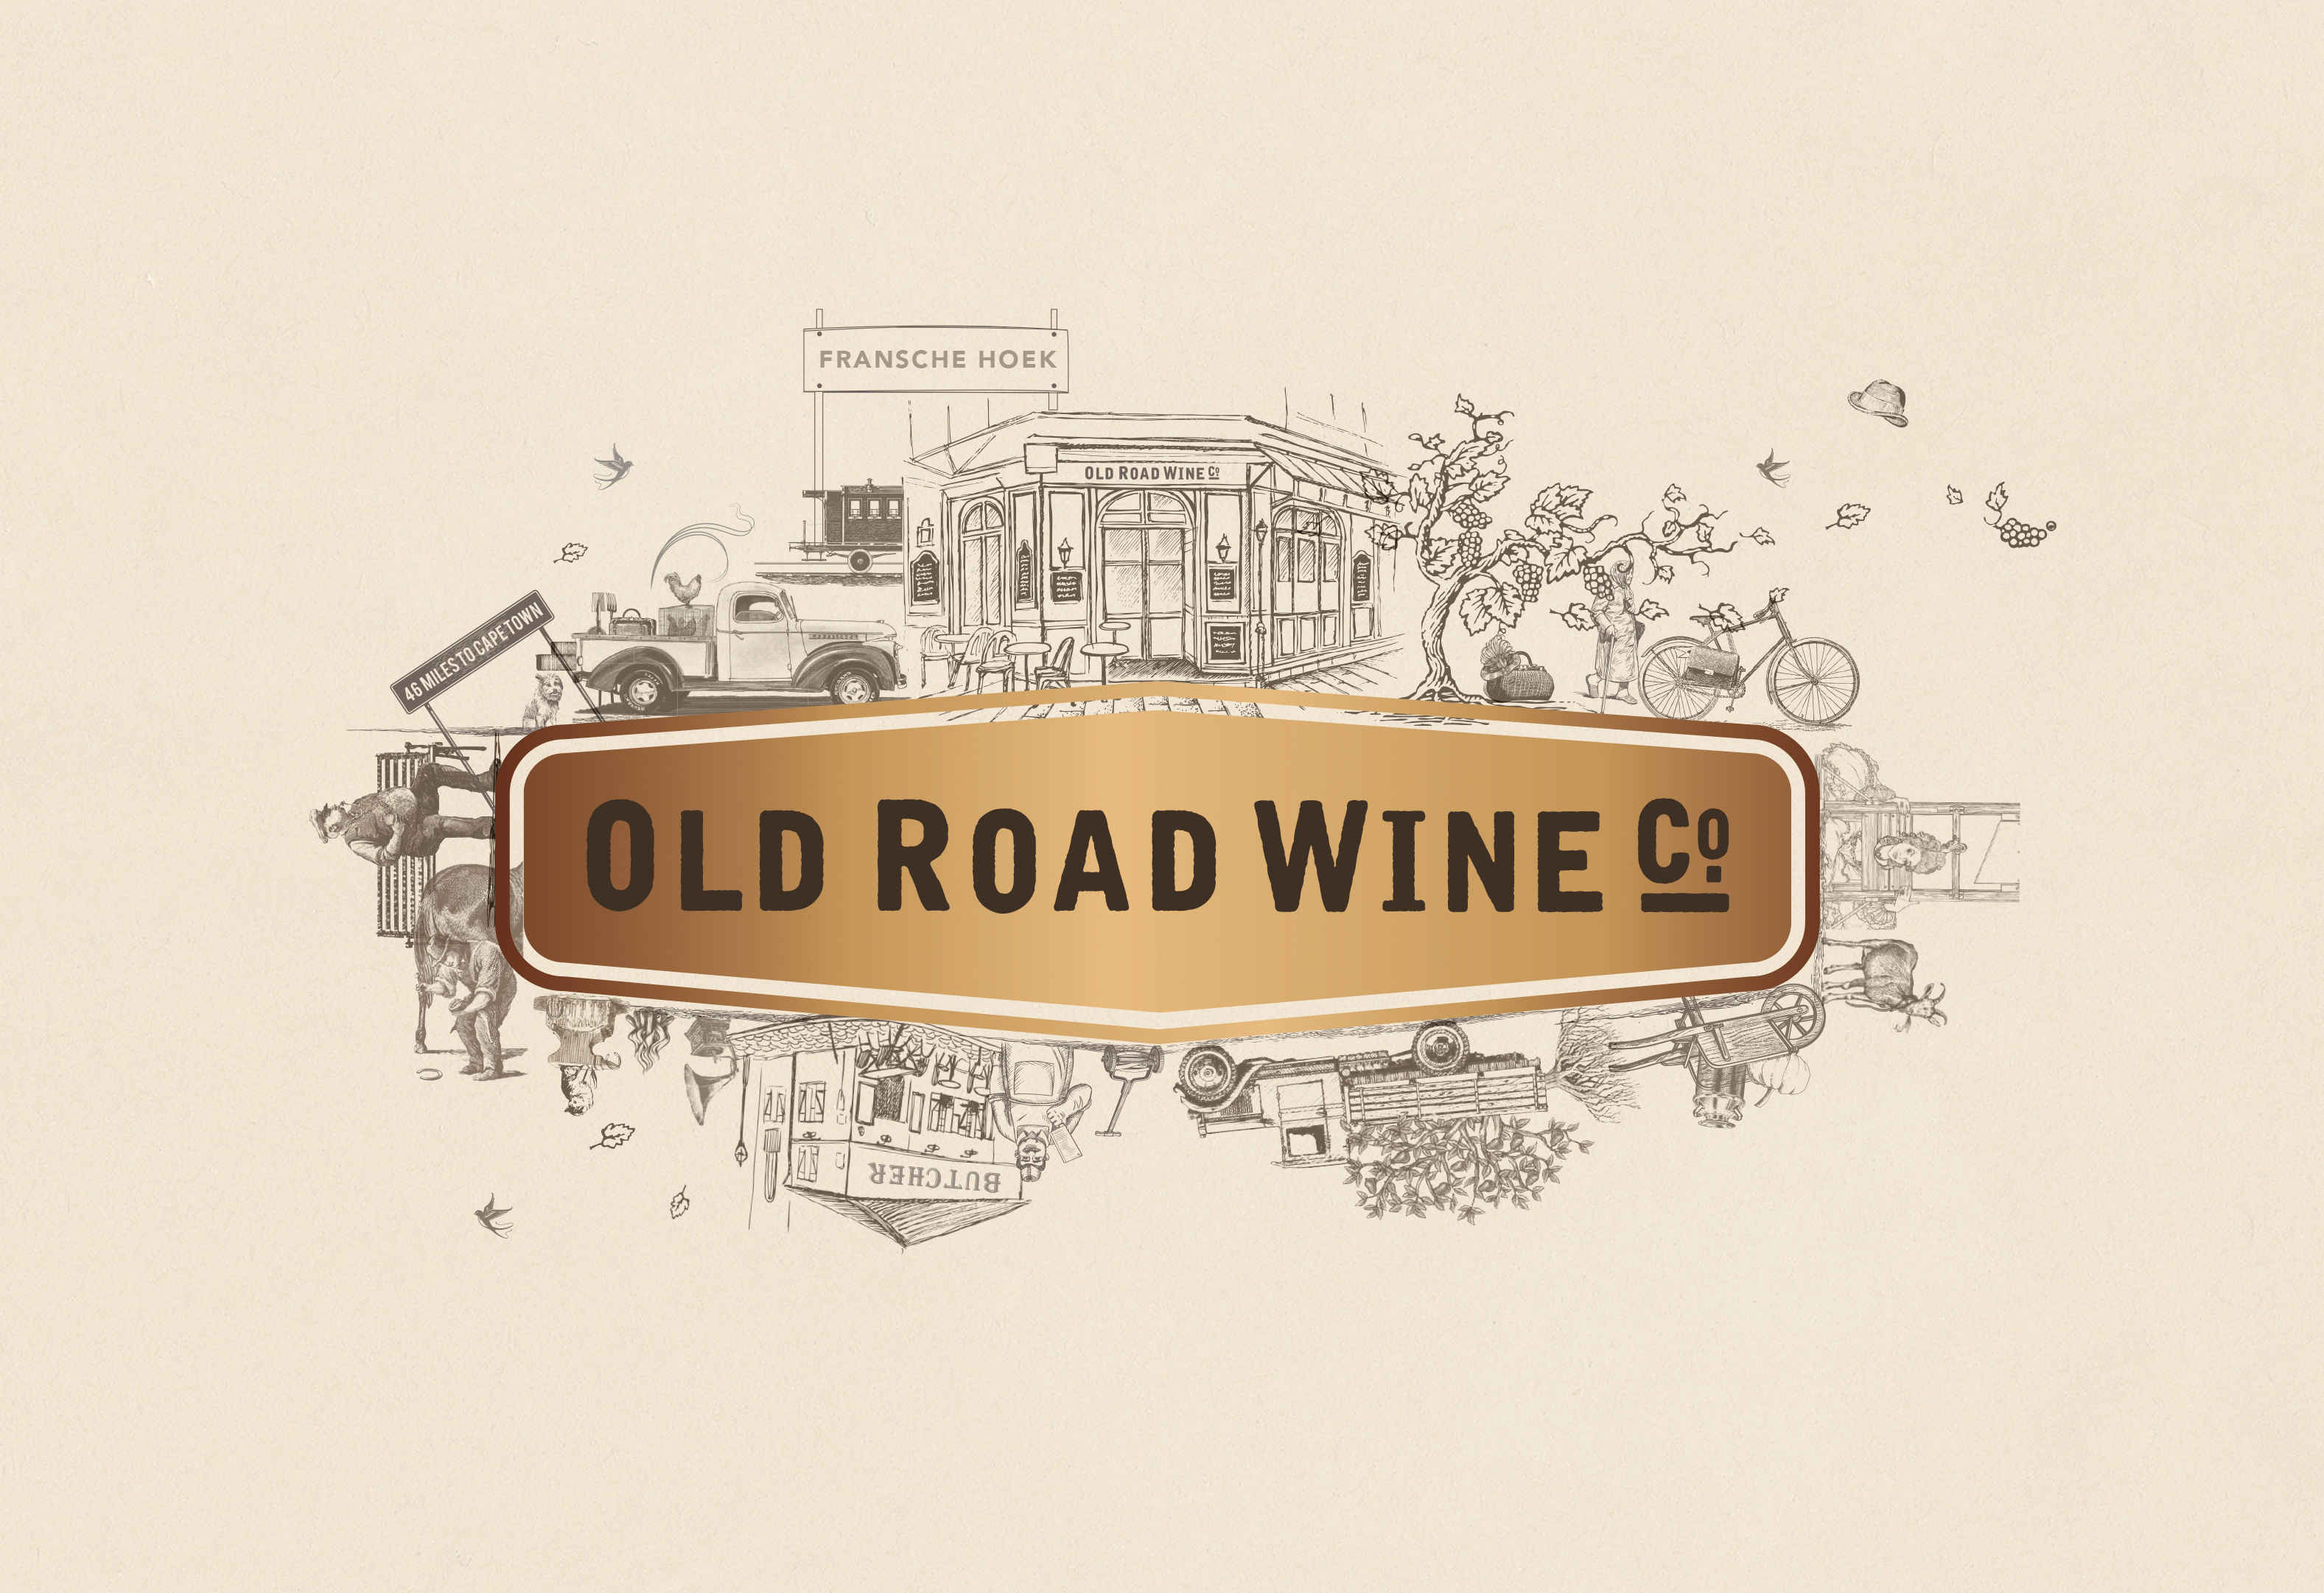 Old Road Wine Co